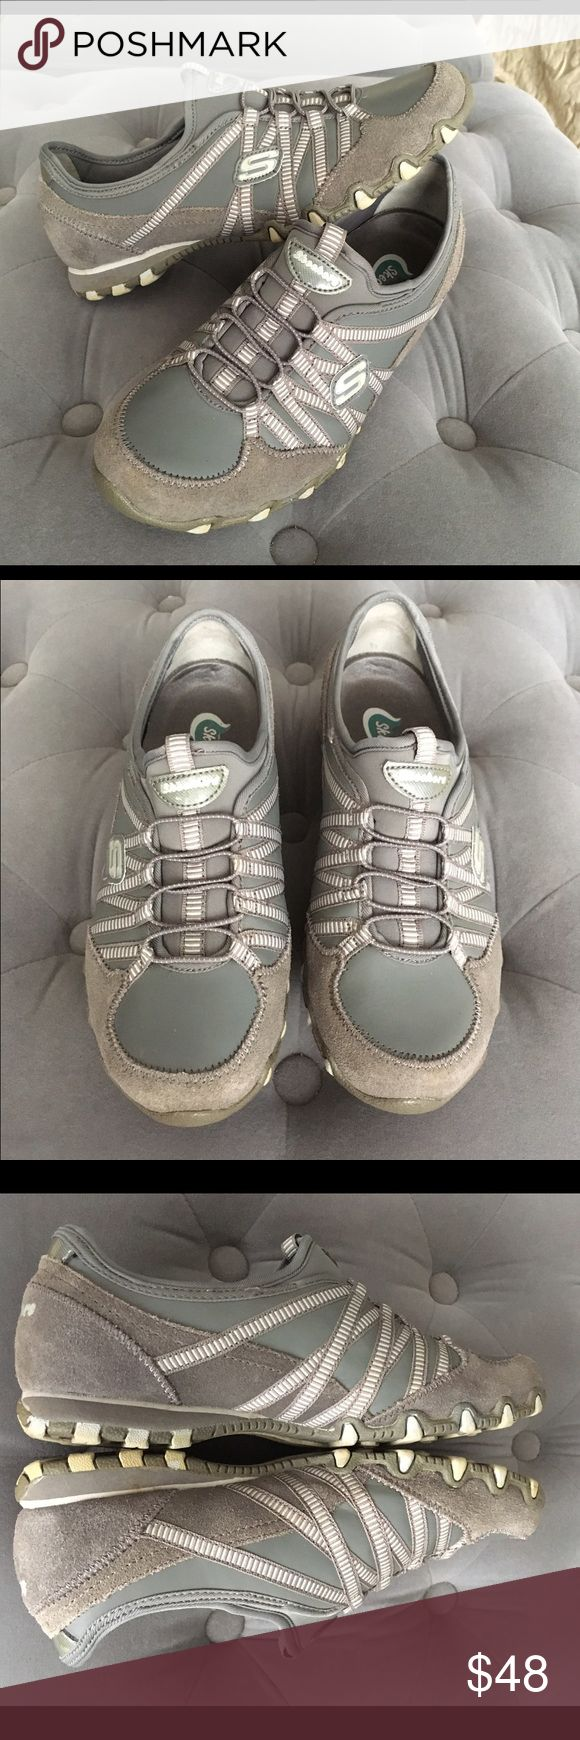 Skechers Bikers Sole Attraction Size 6.5 Gray Skechers Bikers Sole Attraction slip on sneakers with leather and nylon uppers. Color Gray. Size 6.5 Skechers Shoes Athletic Shoes